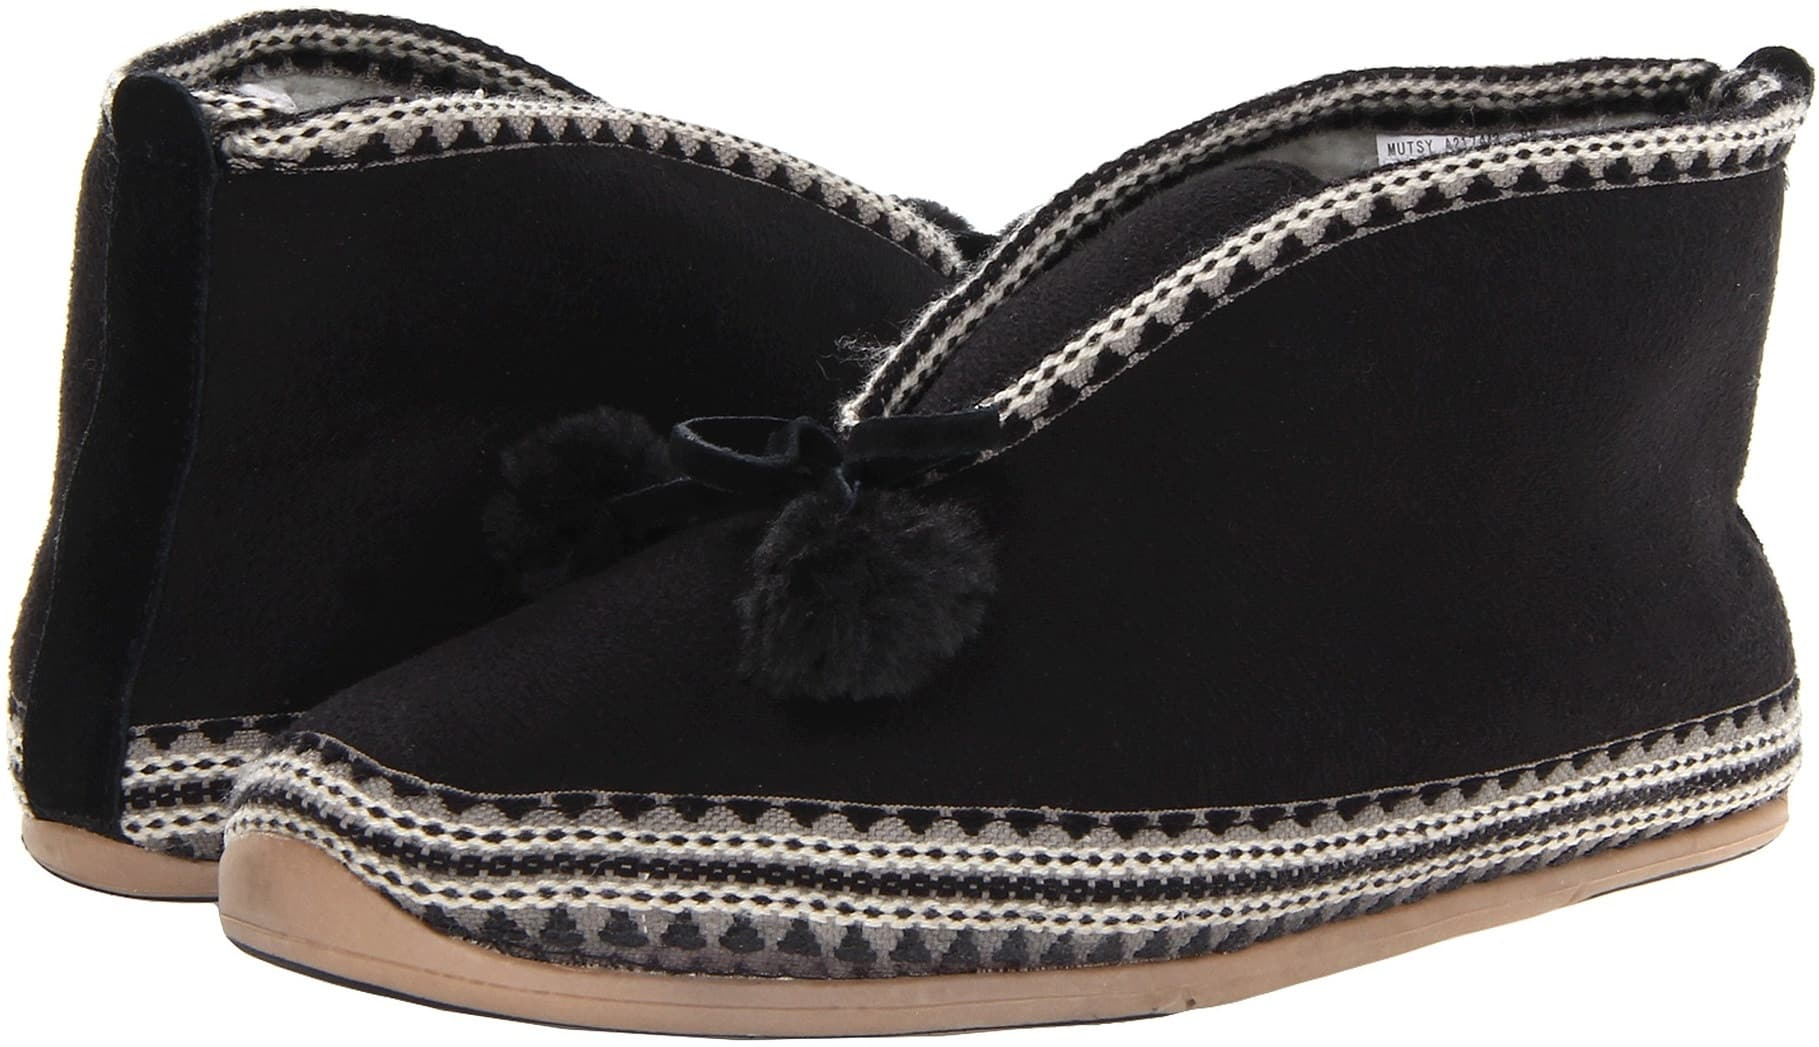 Deer Stags Women's Mutsy Slipper Boot (Black, Brown Microsuede, or Olive)  $6.40 + Free Shipping